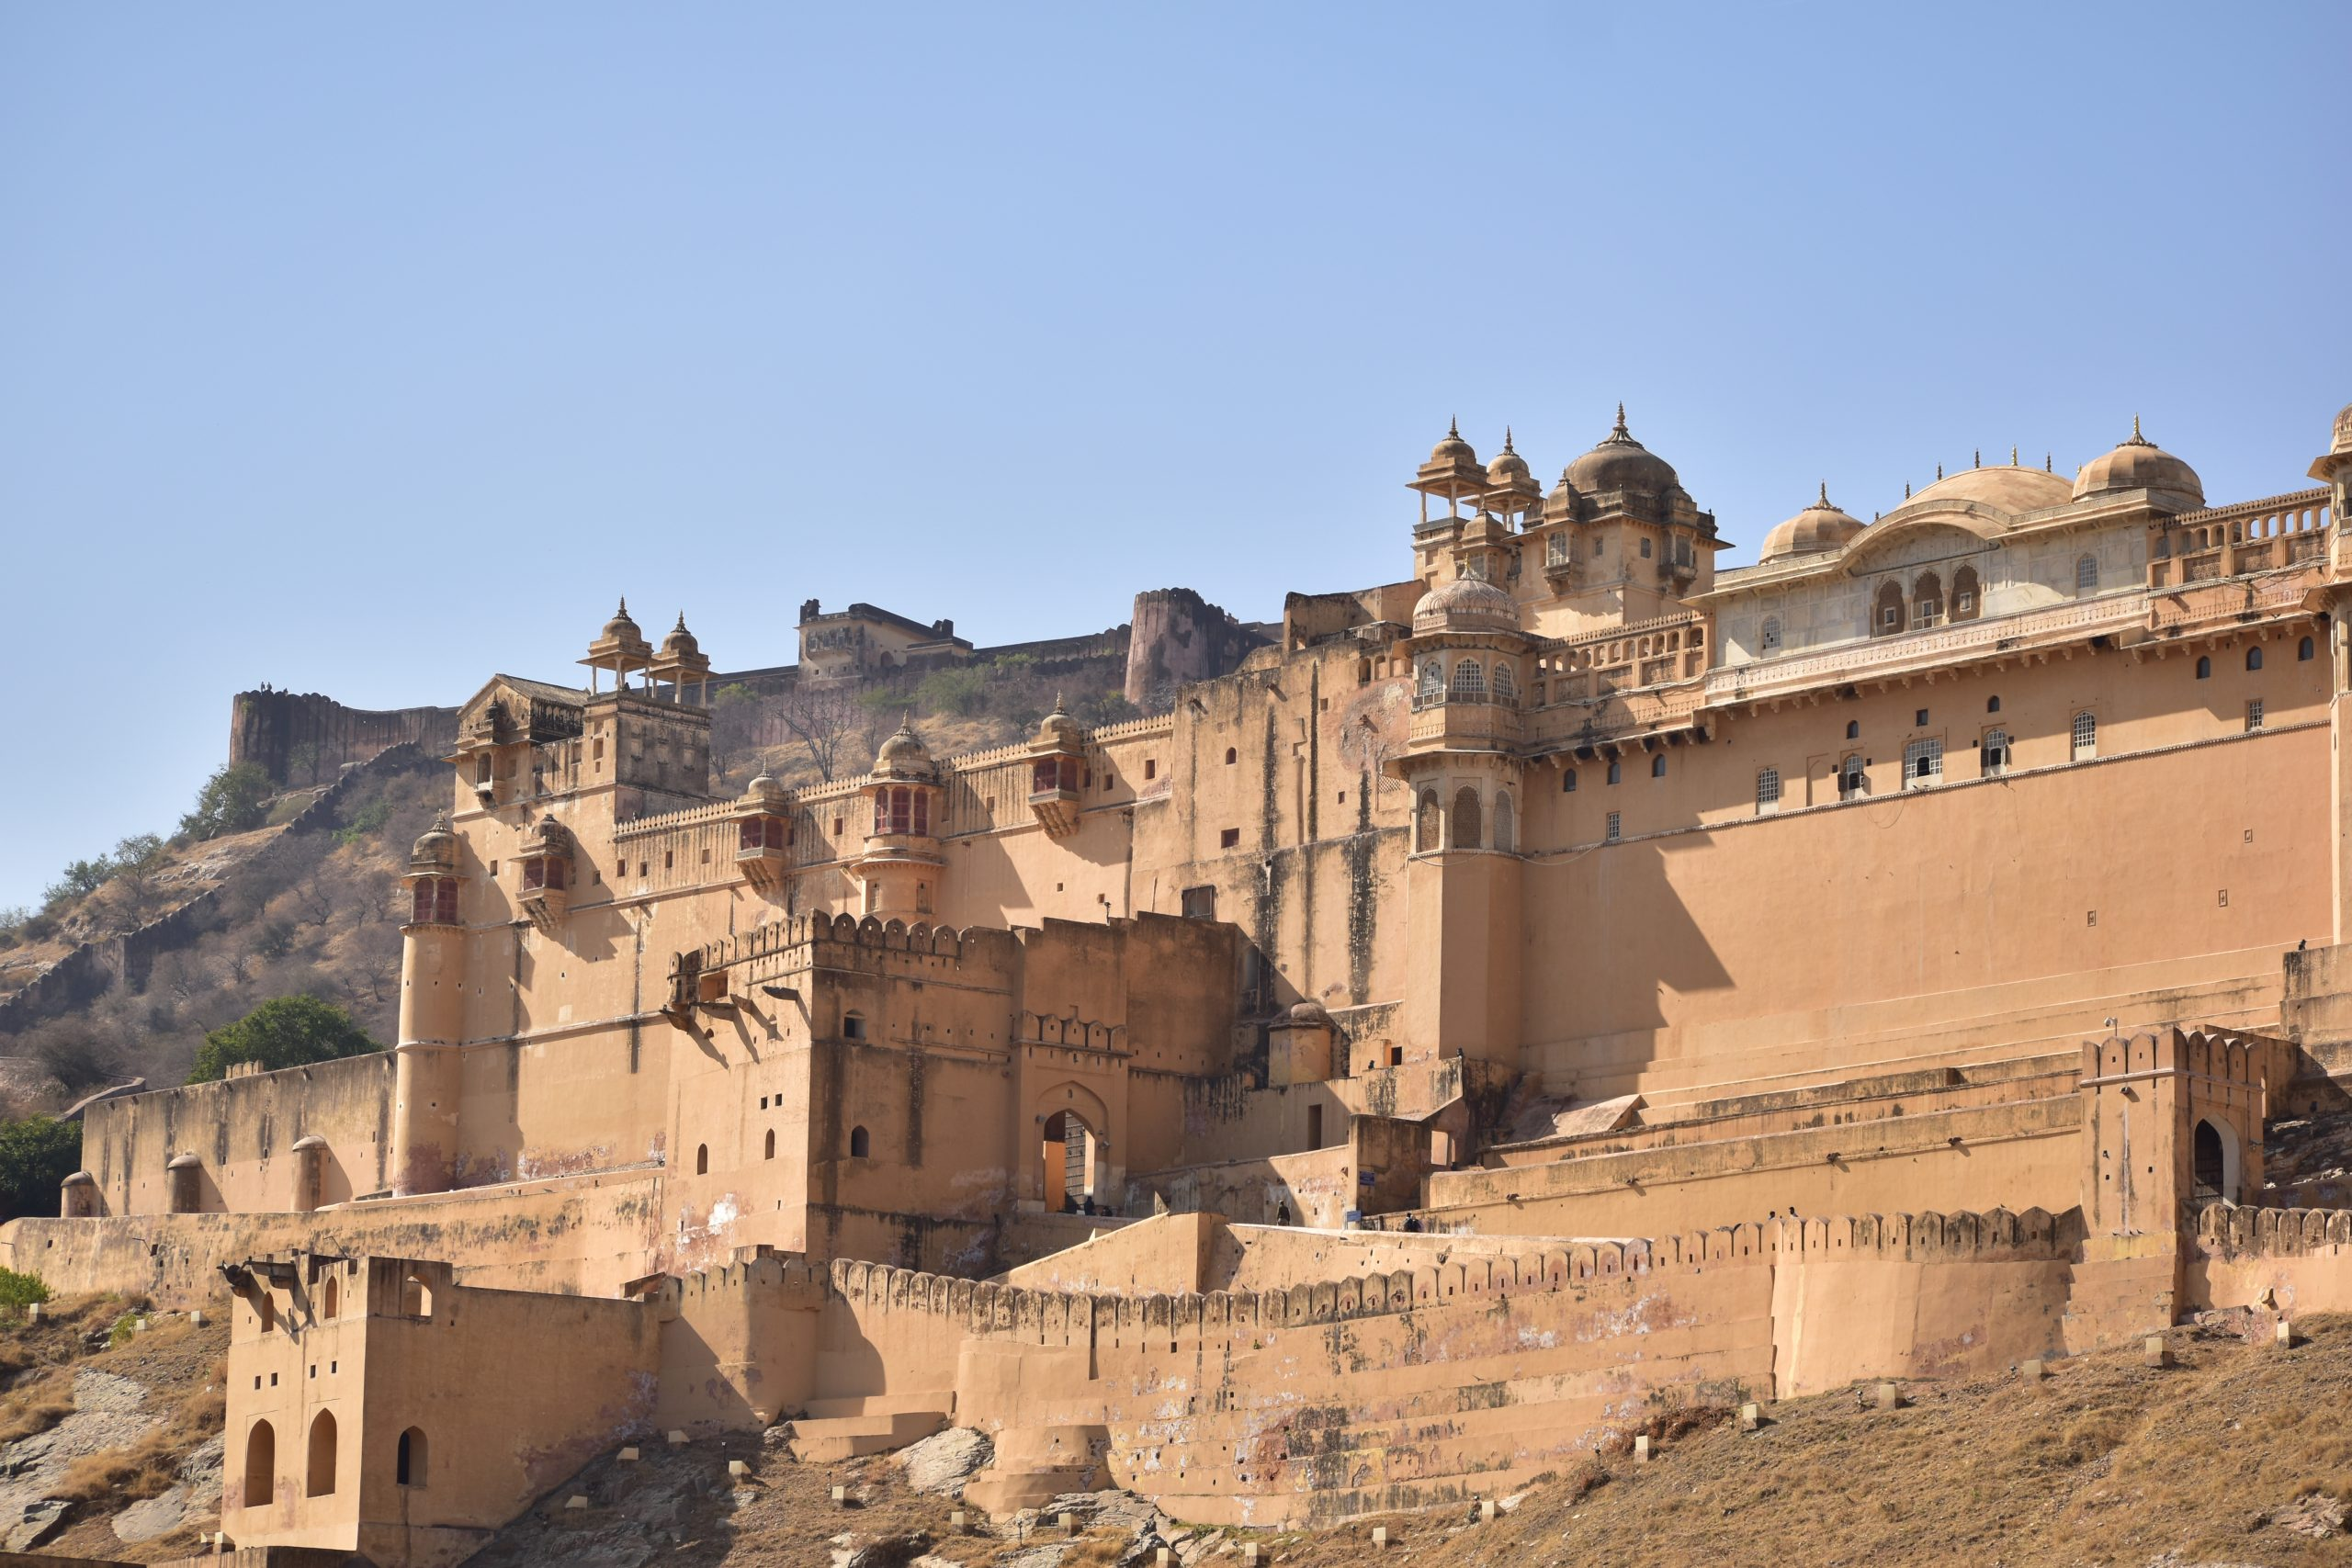 Aamer fort in Jaipur